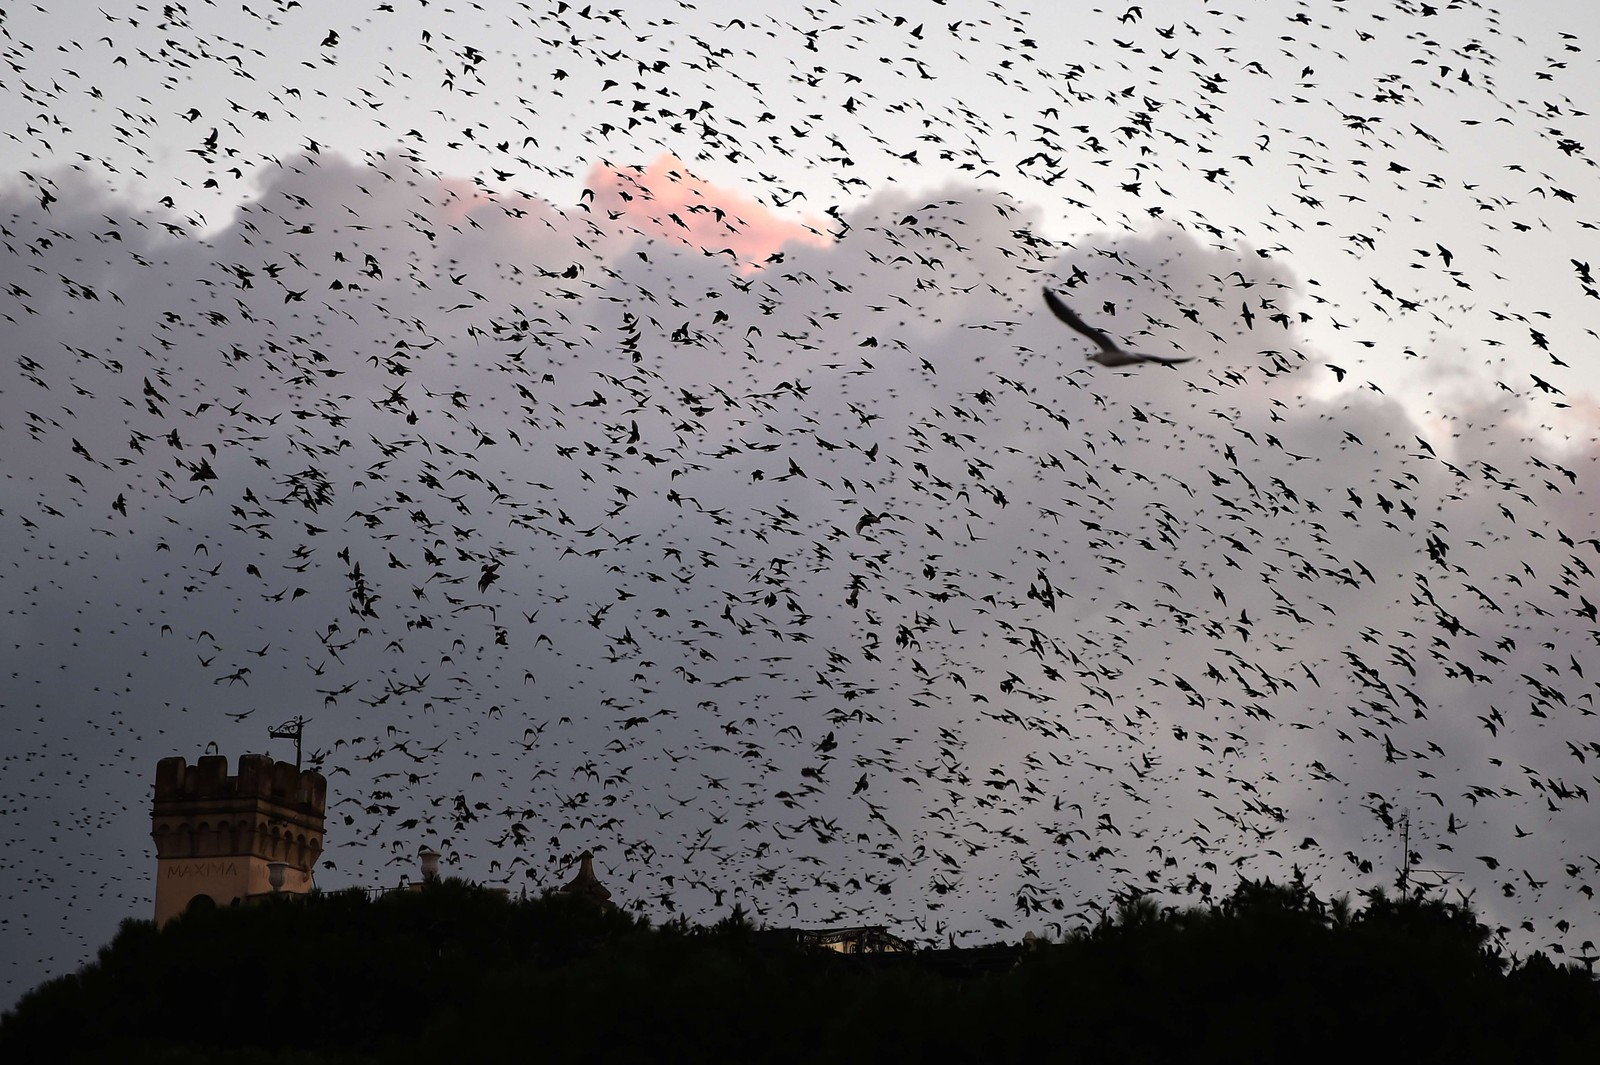 Starlings migrating from northern Europe fly over Rome on November 3, 2014. About one-million starlings migrate in Rome during autumn and winter time and draw beautiful patterns in the sky before spending the nights in the trees by the Tiber river, creating chaos in the neighborhood with their droppings.